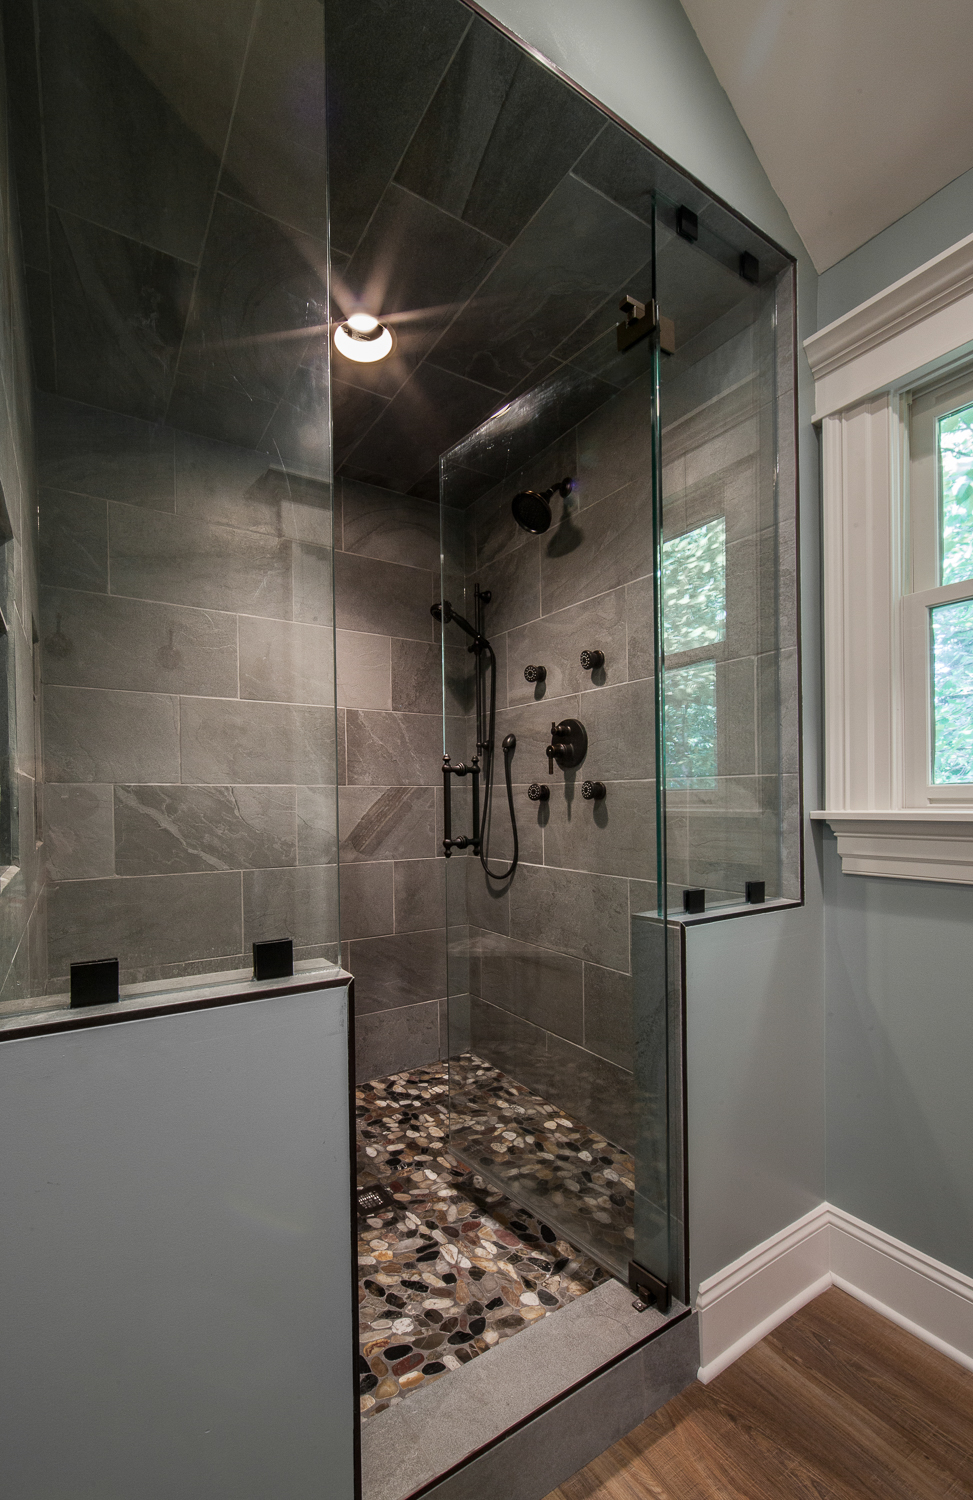 This shower is stunning! The slate tile give it a natural but contemporary vibe, and the stone pebble floor provides a spa-like experience. It's complete with 4 body sprays, a hand shower, and a shower head. The glass enclosure gives it a much more open feel compared to the walled-in shower that used to be in it's place.